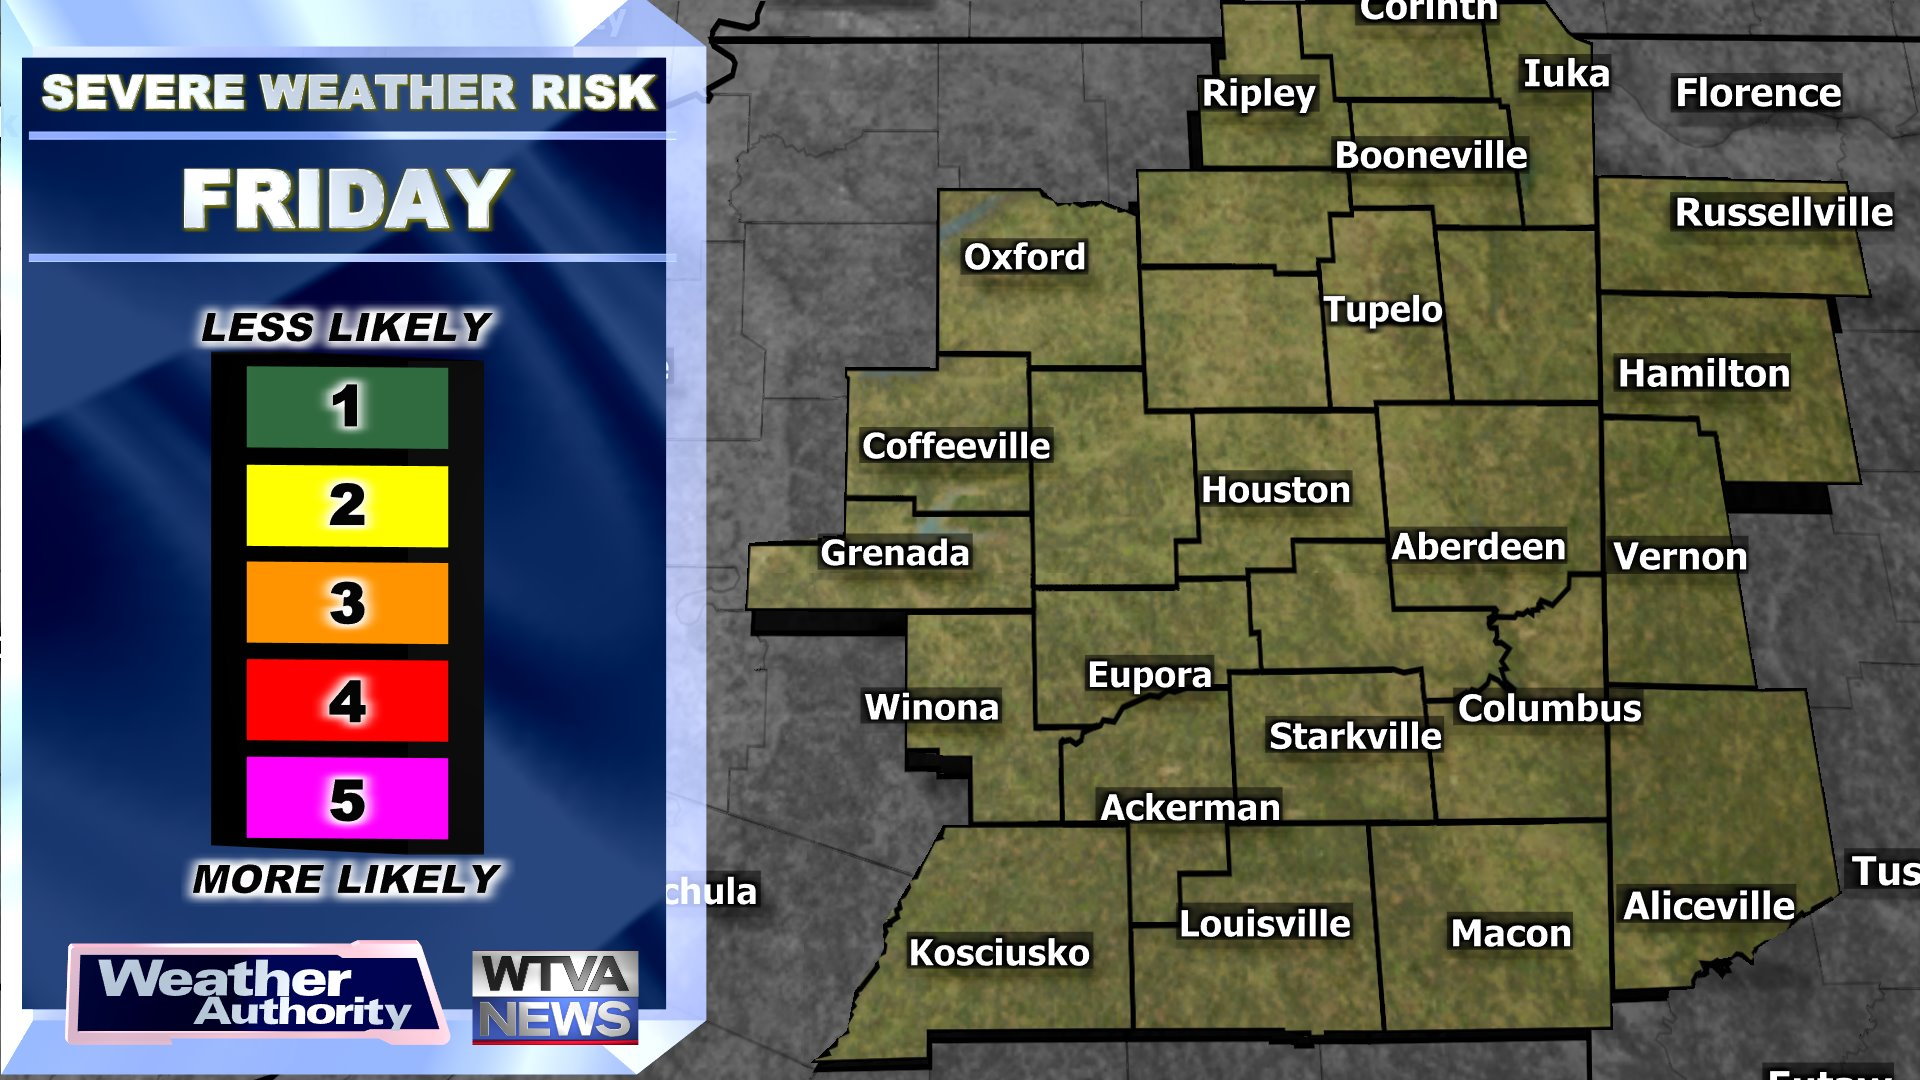 Day 3 Severe Weather Risk